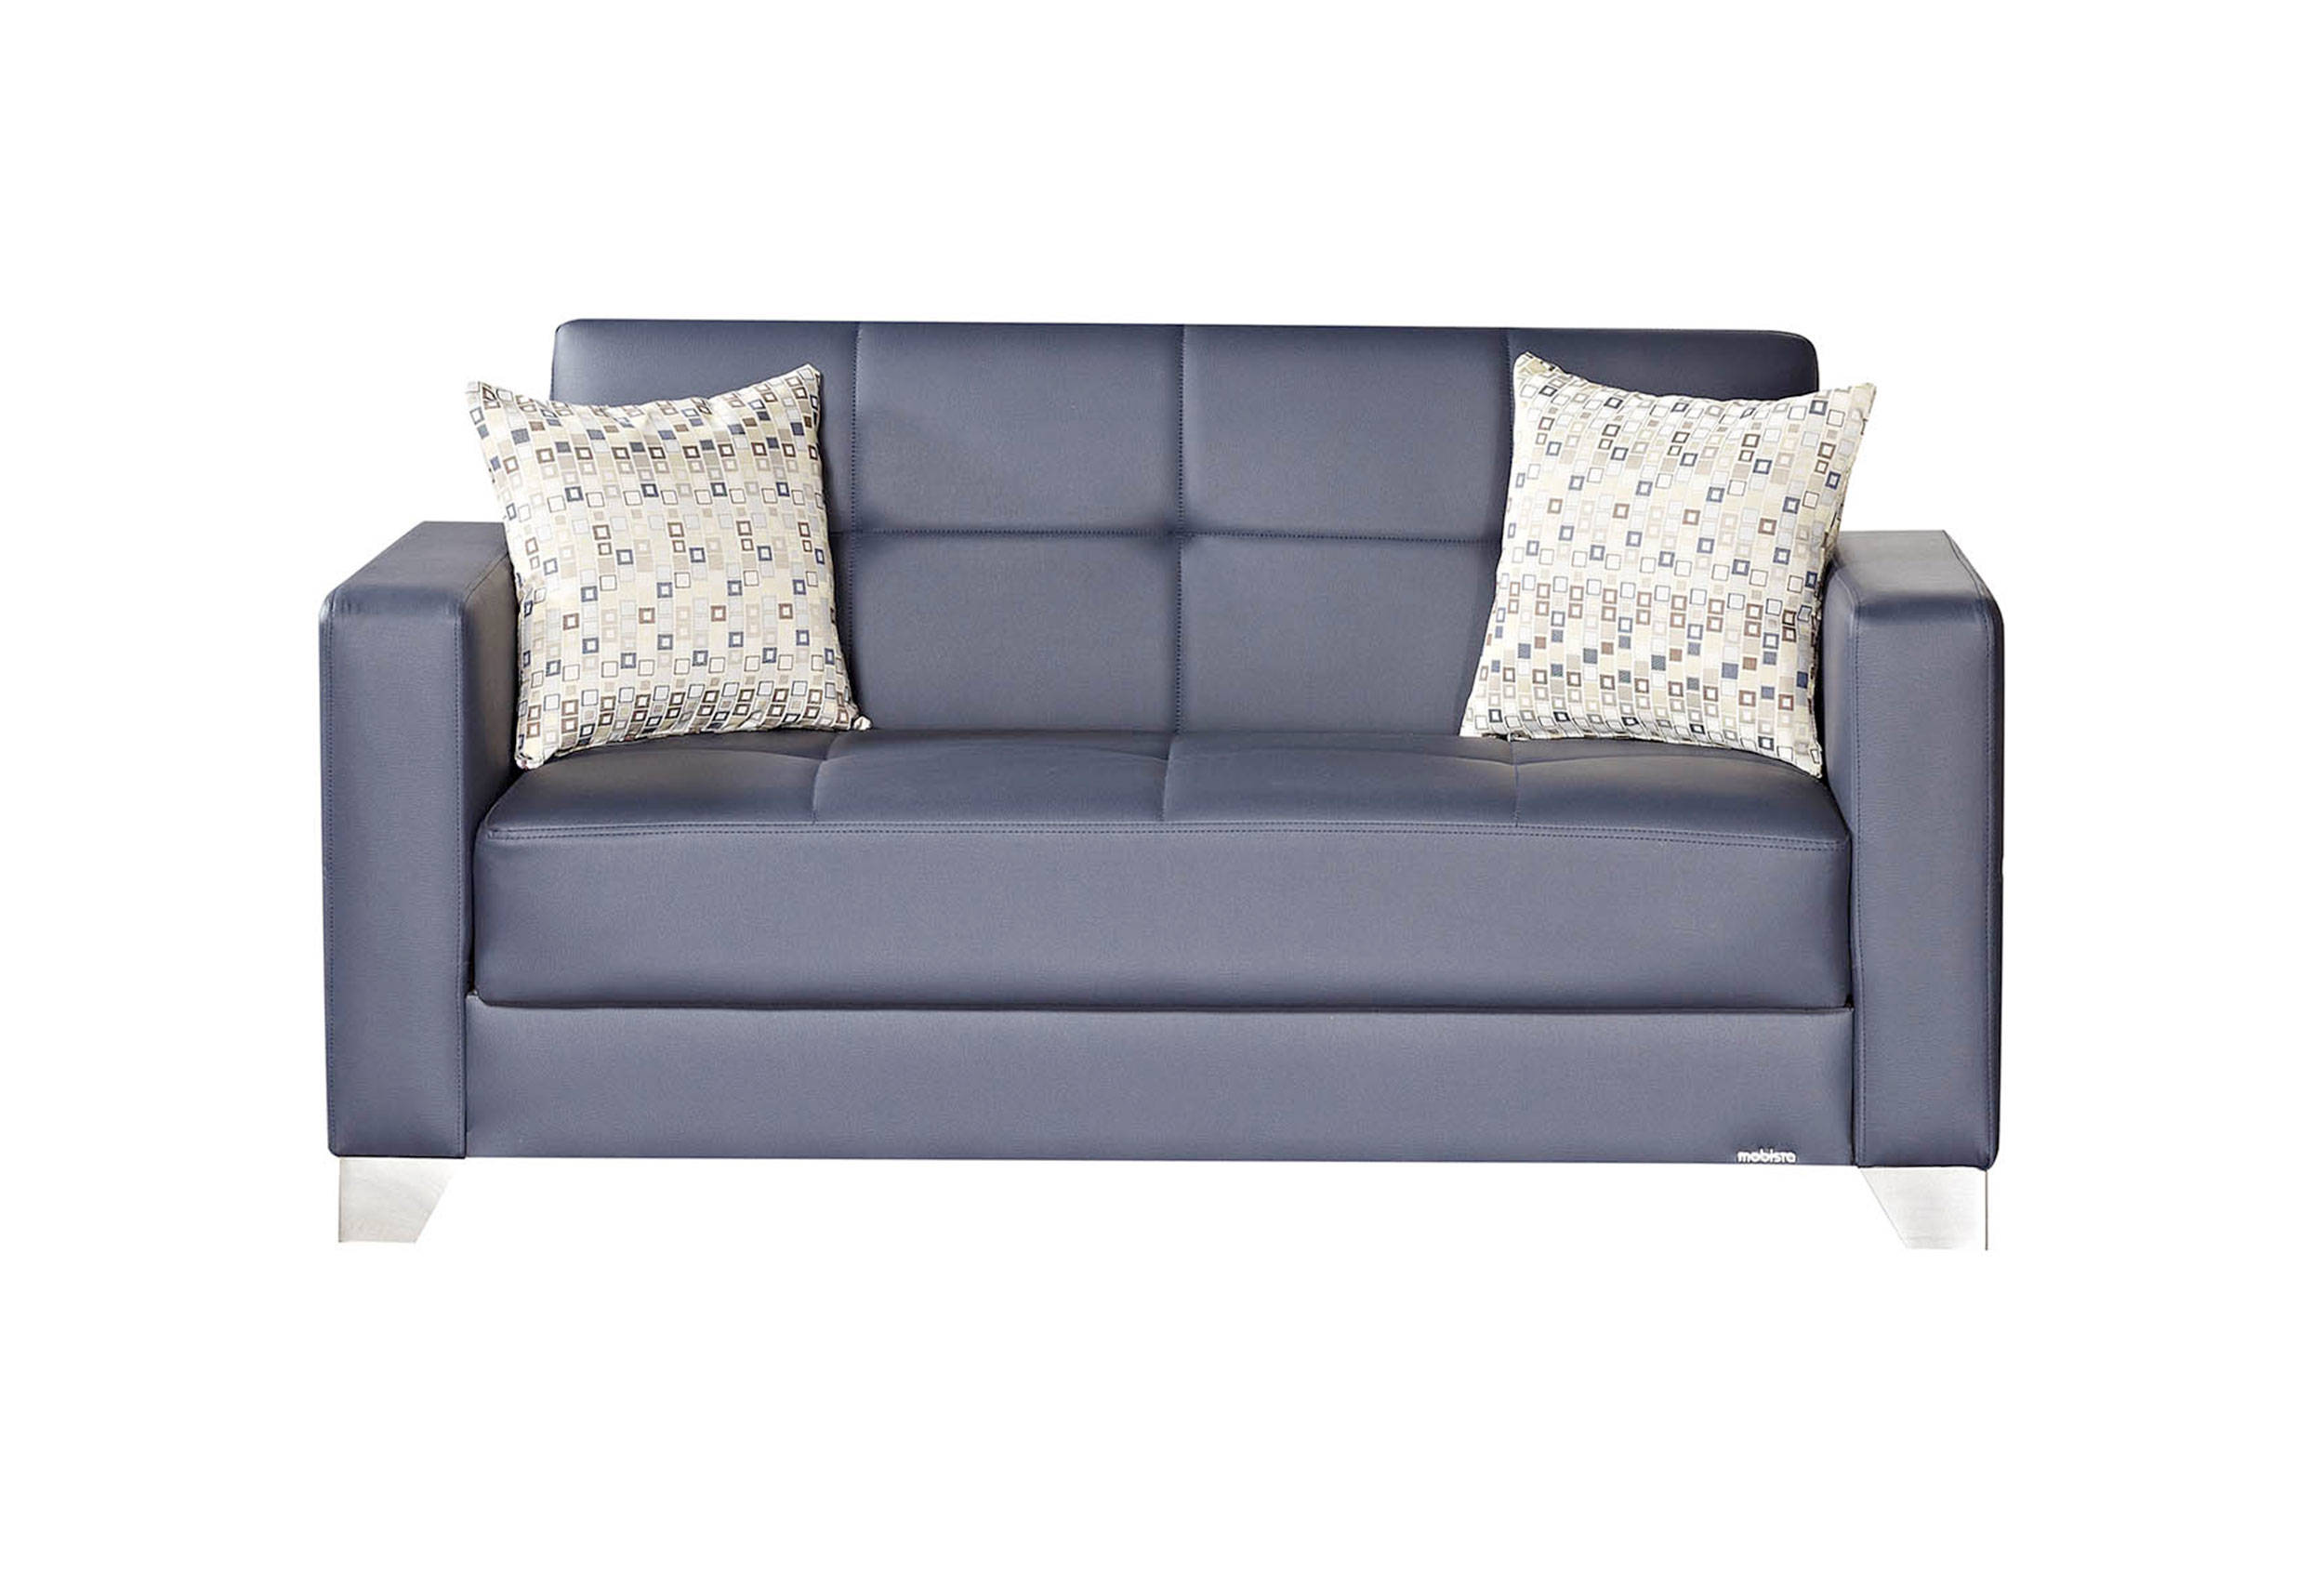 Stupendous Viva Italia Prestige Navy Blue Faux Leather Mdf Plywood Loveseat Squirreltailoven Fun Painted Chair Ideas Images Squirreltailovenorg